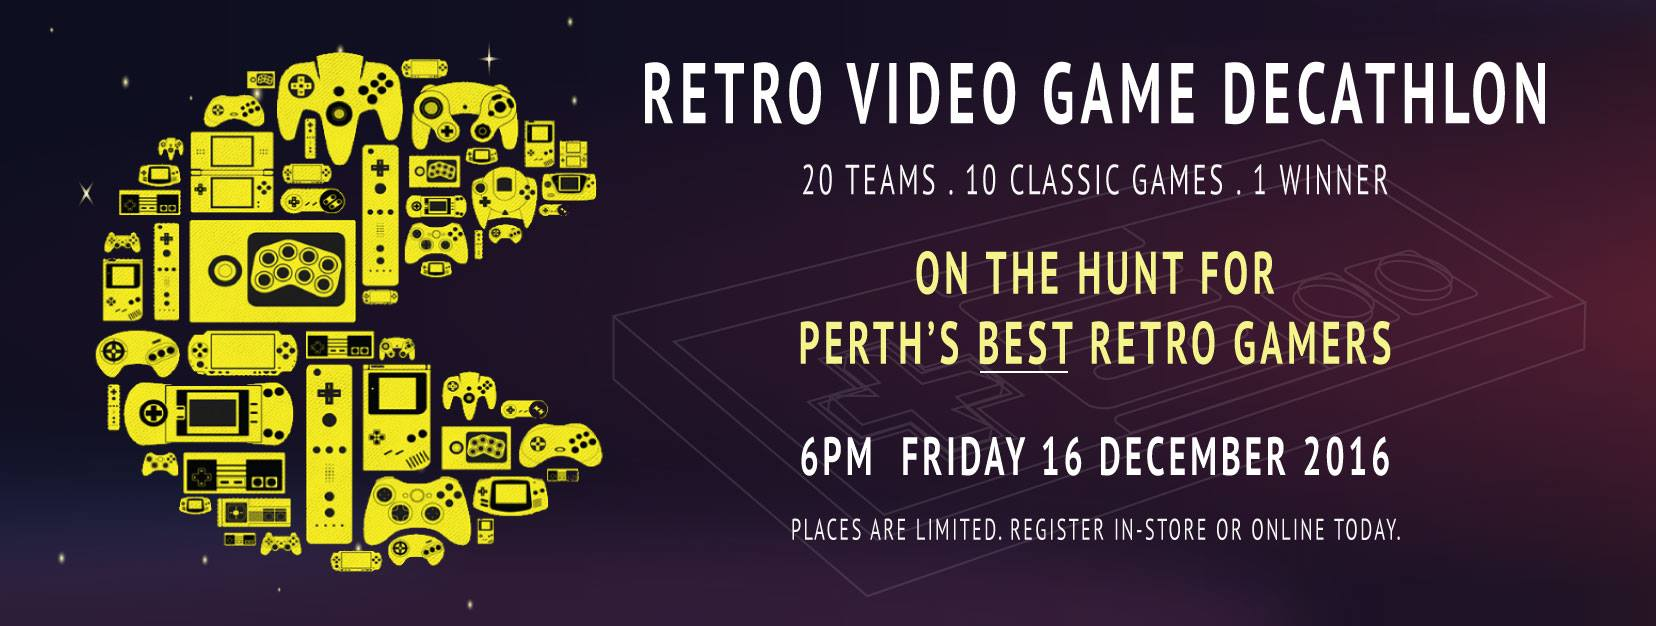 Tickets for Retro Video Game Decathlon in Perth from Ticketbooth